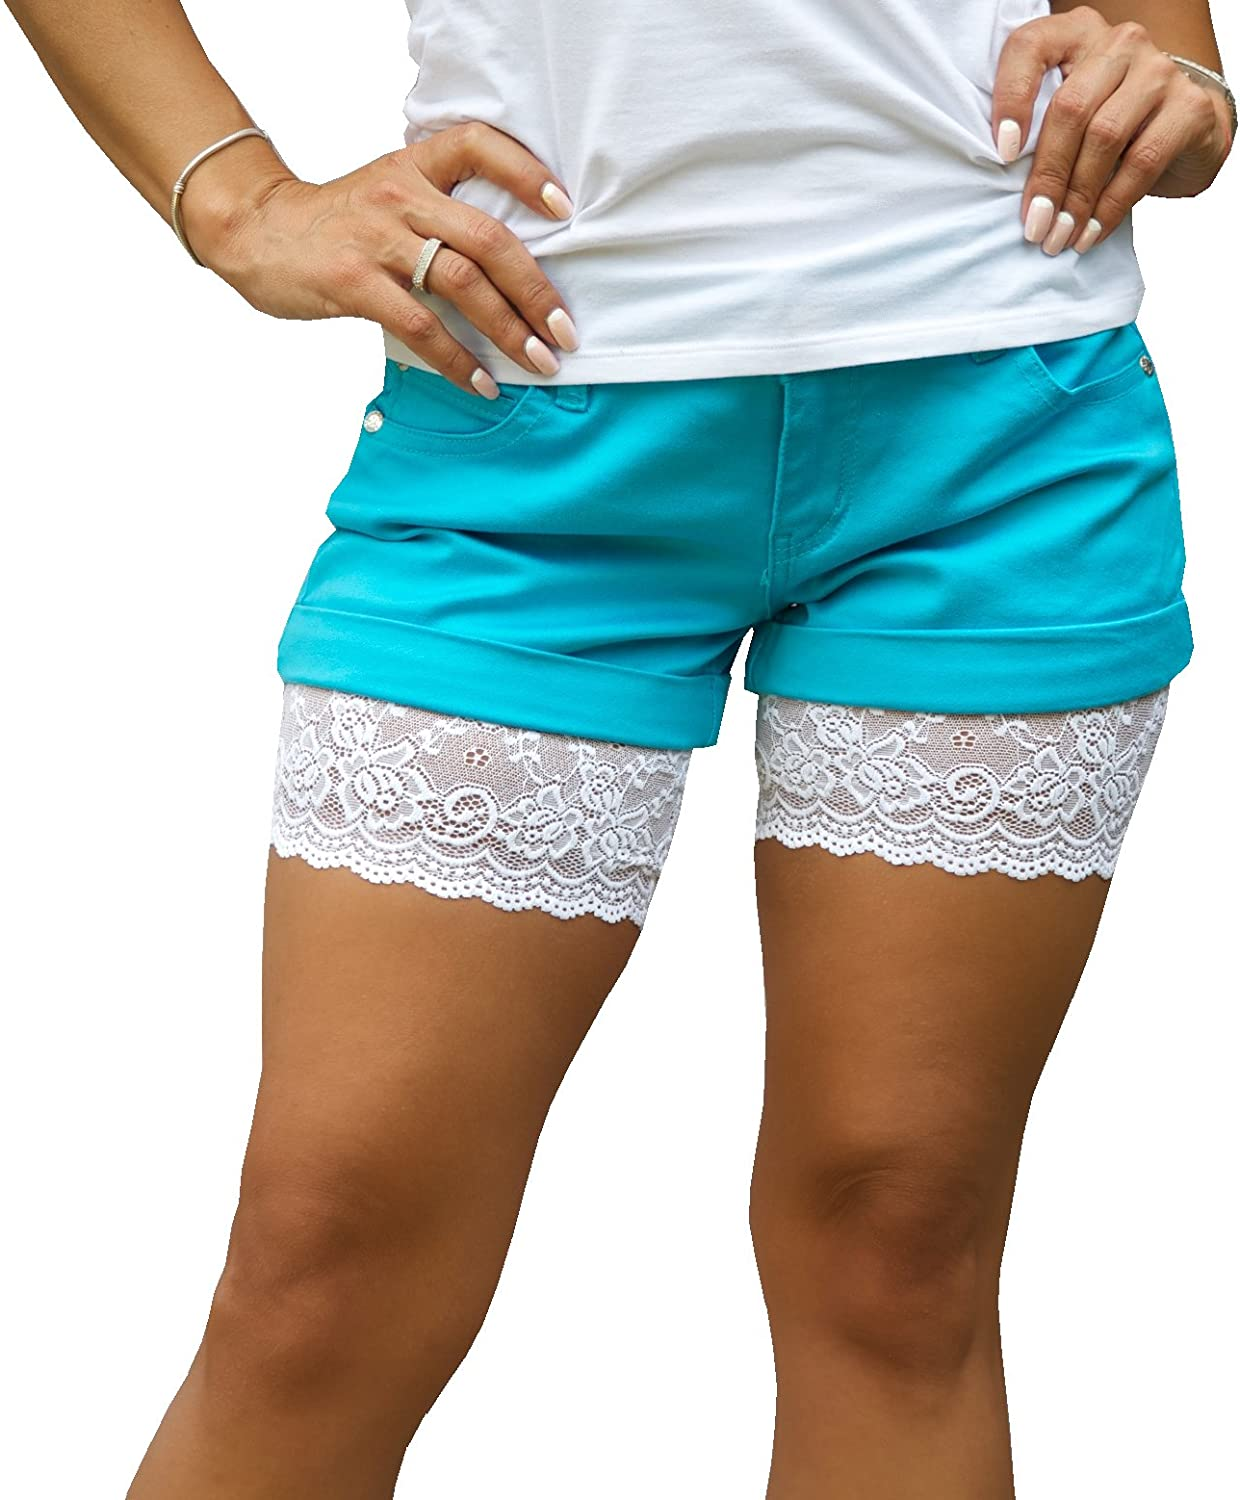 Elastic Anti-Chafing Thigh Bands